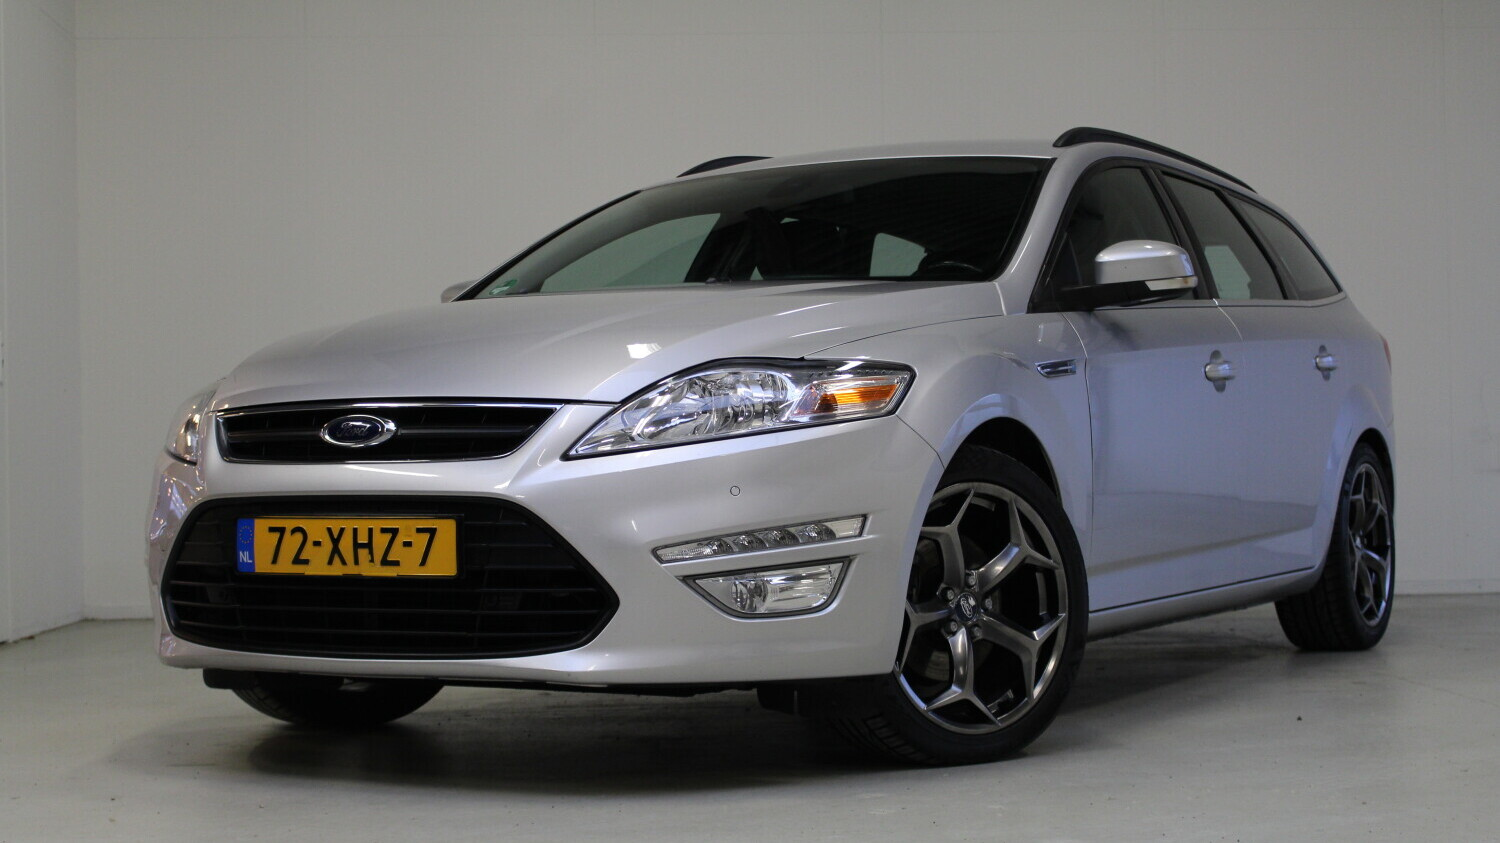 Ford Mondeo Station 2012 72-XHZ-7 1